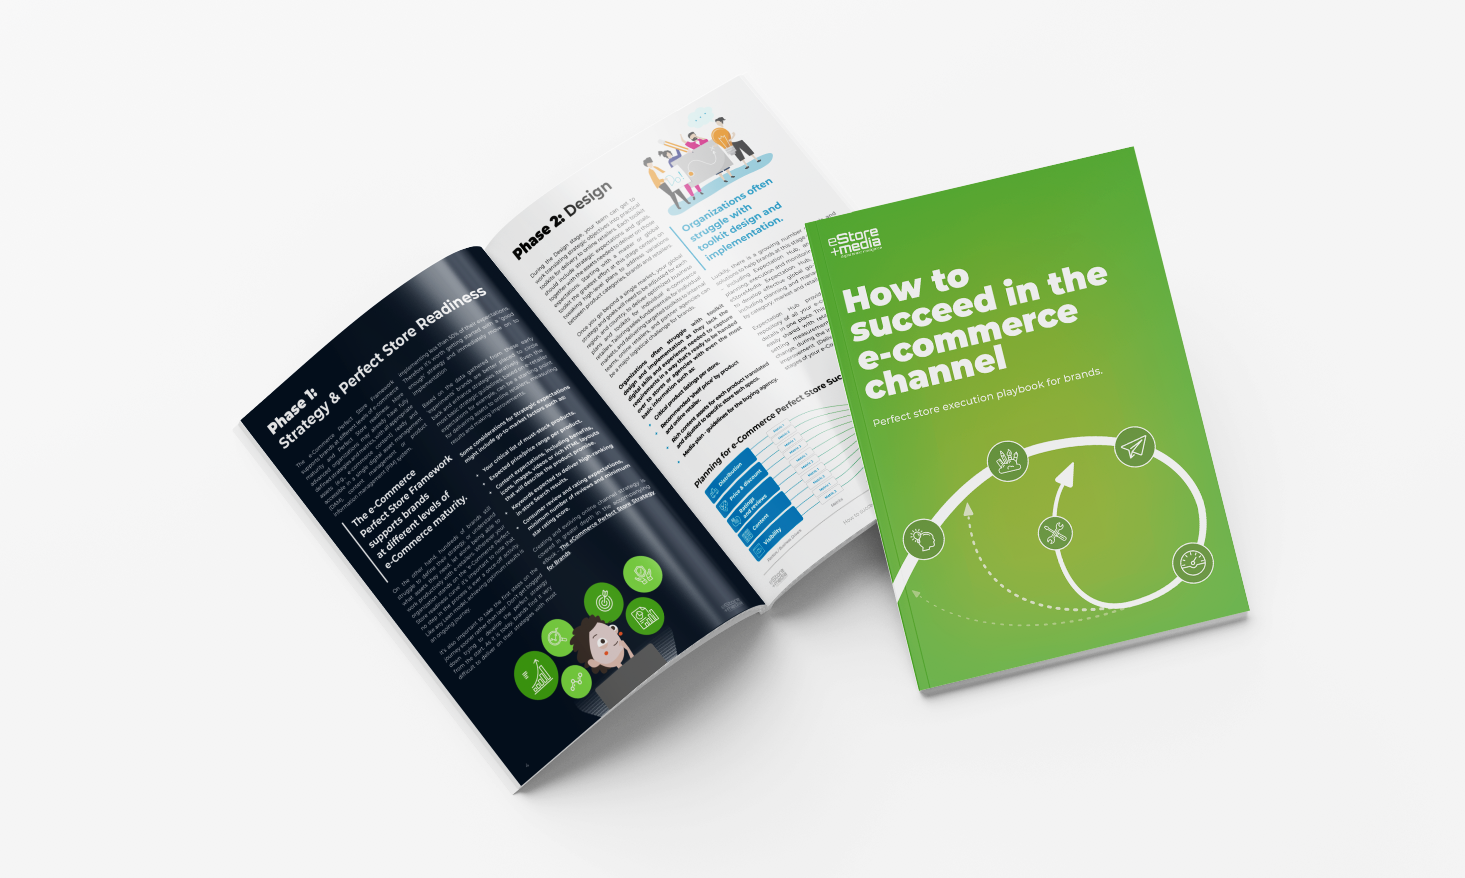 Free eBook How to succeed in the e-commerce channel